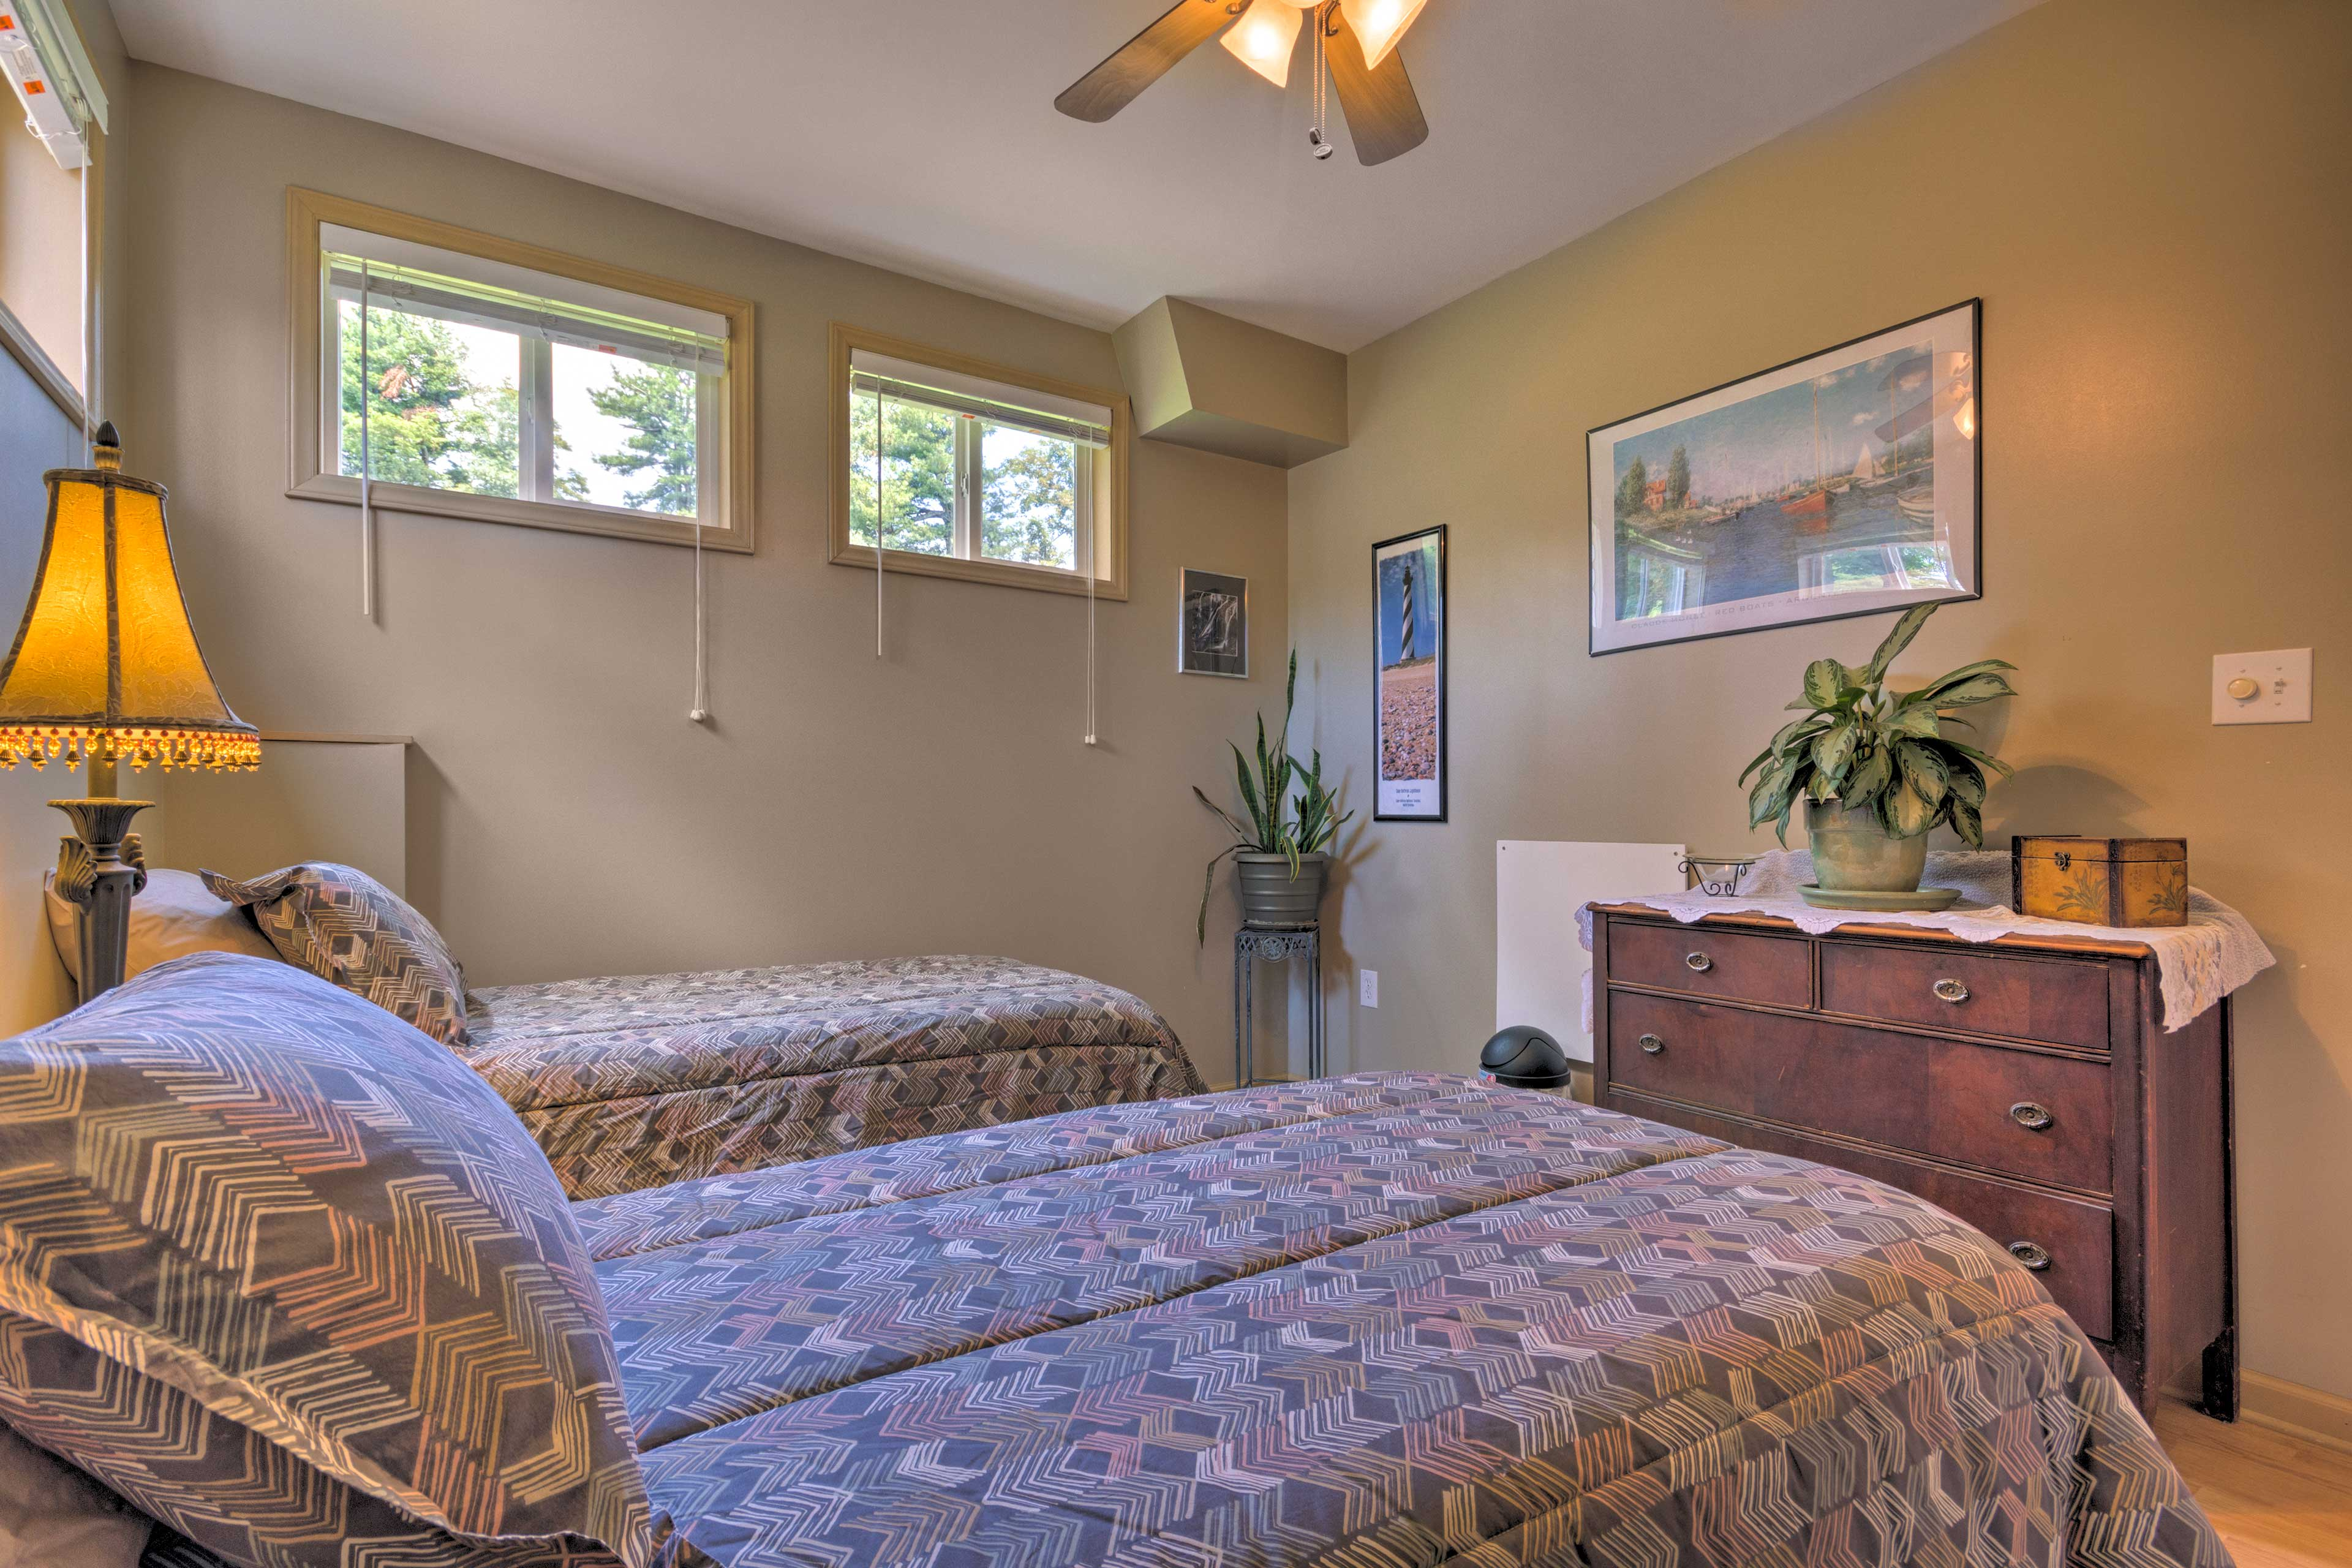 This bedroom offers 2 twin beds.